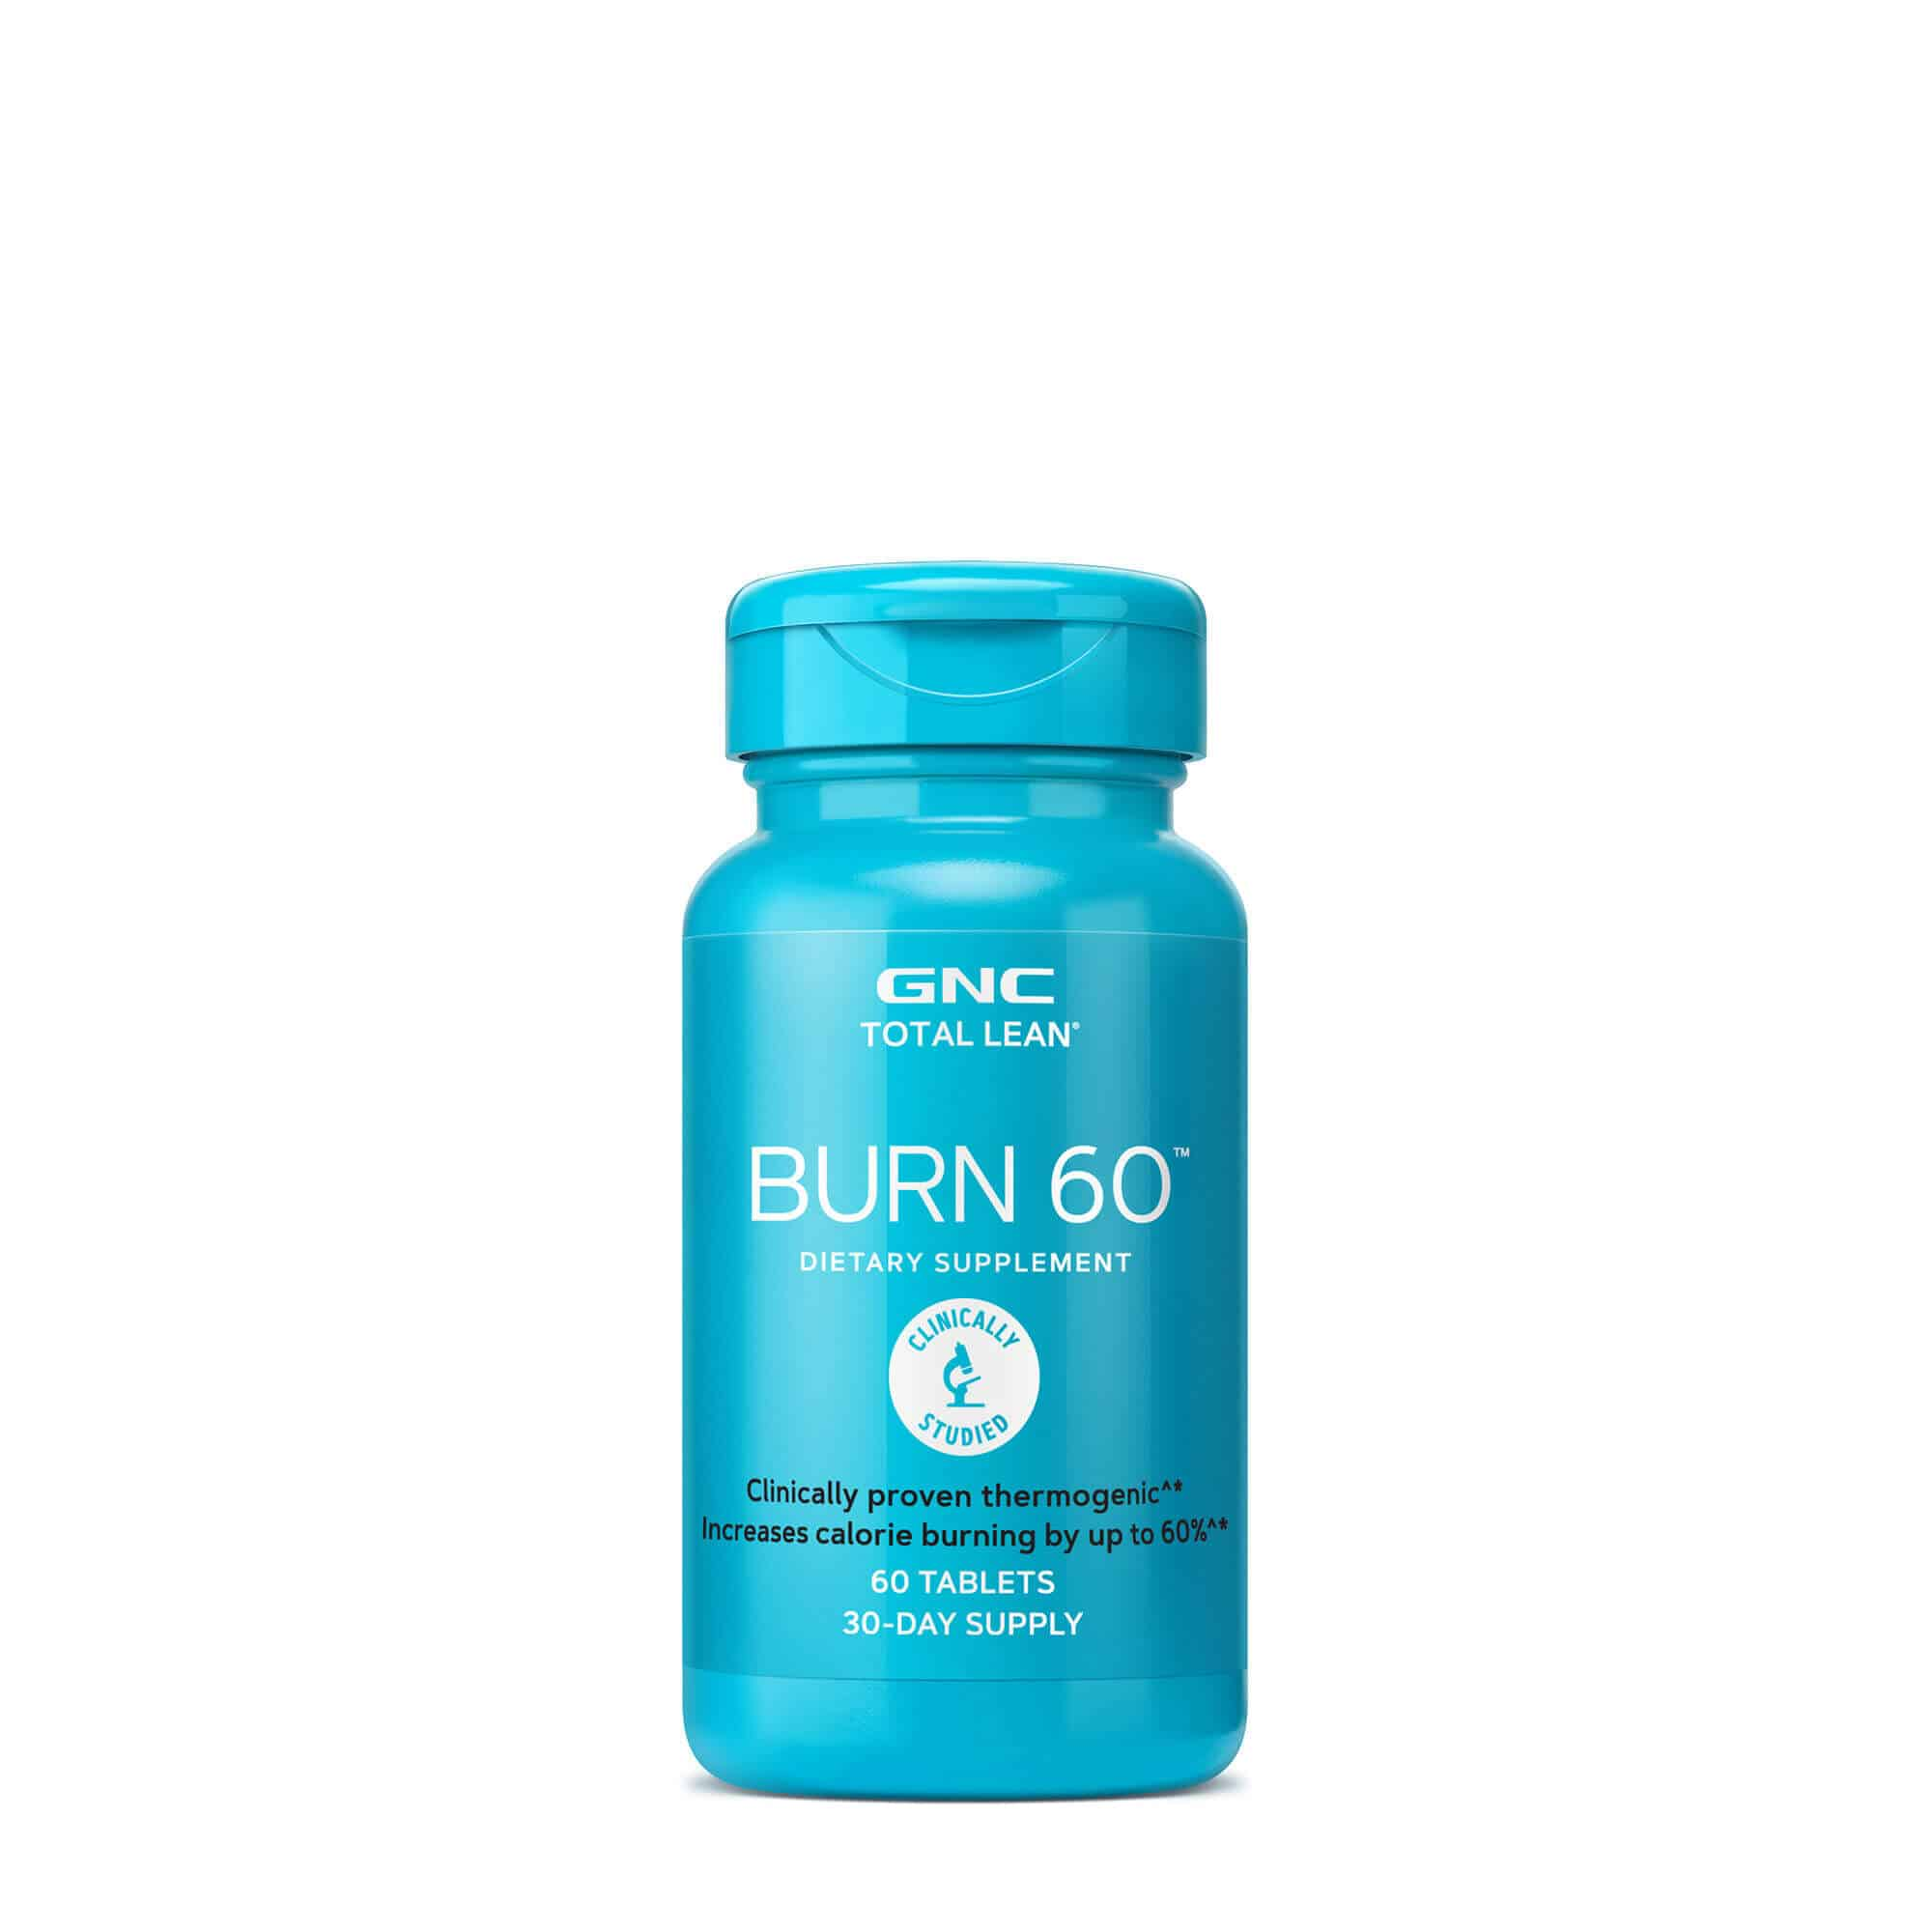 Gnc Burn 60 Review Update 2020 13 Things You Need To Know